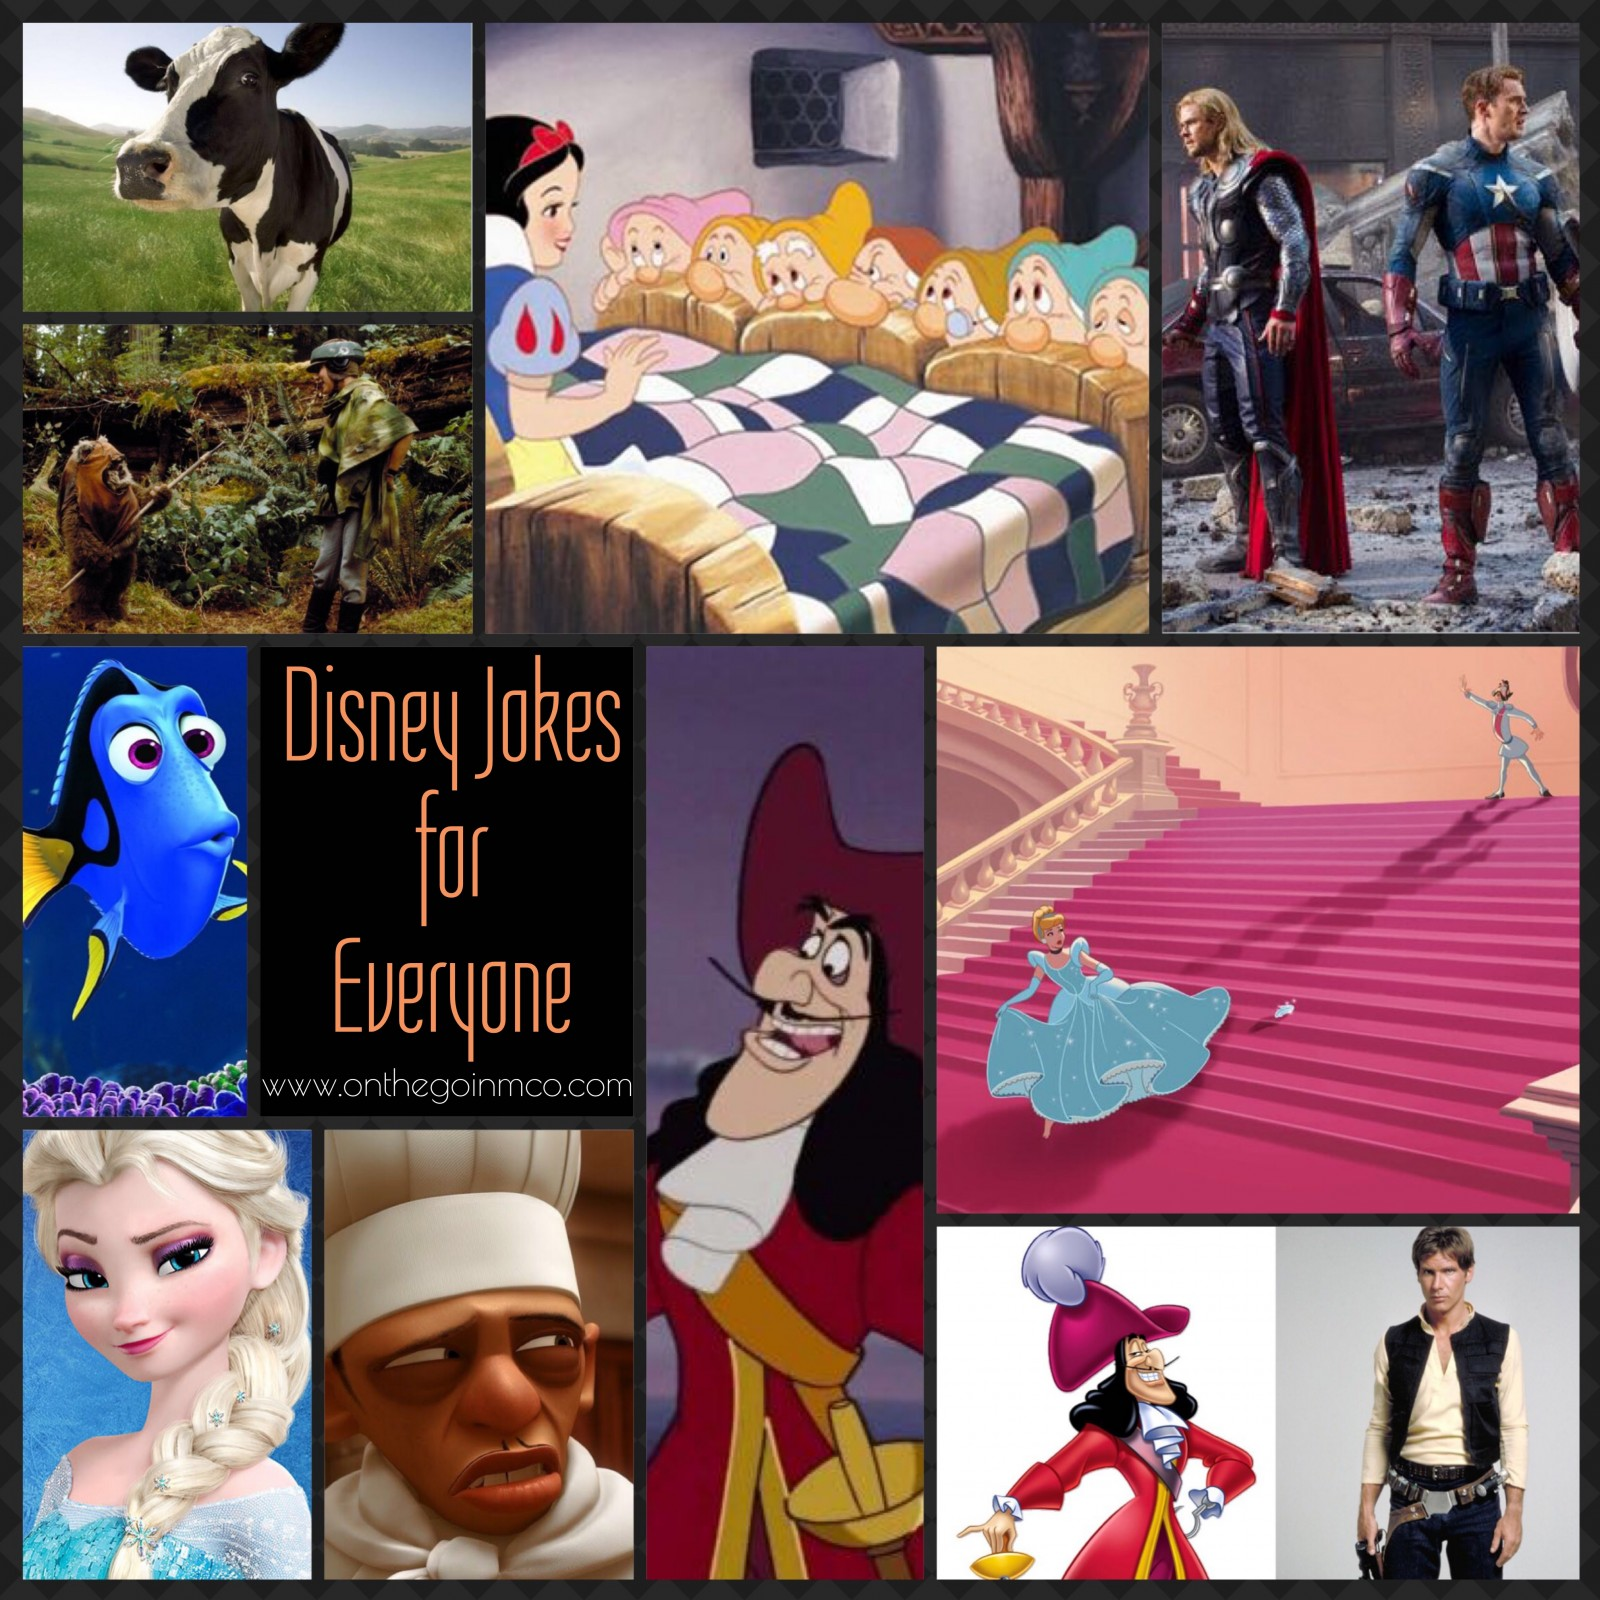 Disney Jokes for Everyone